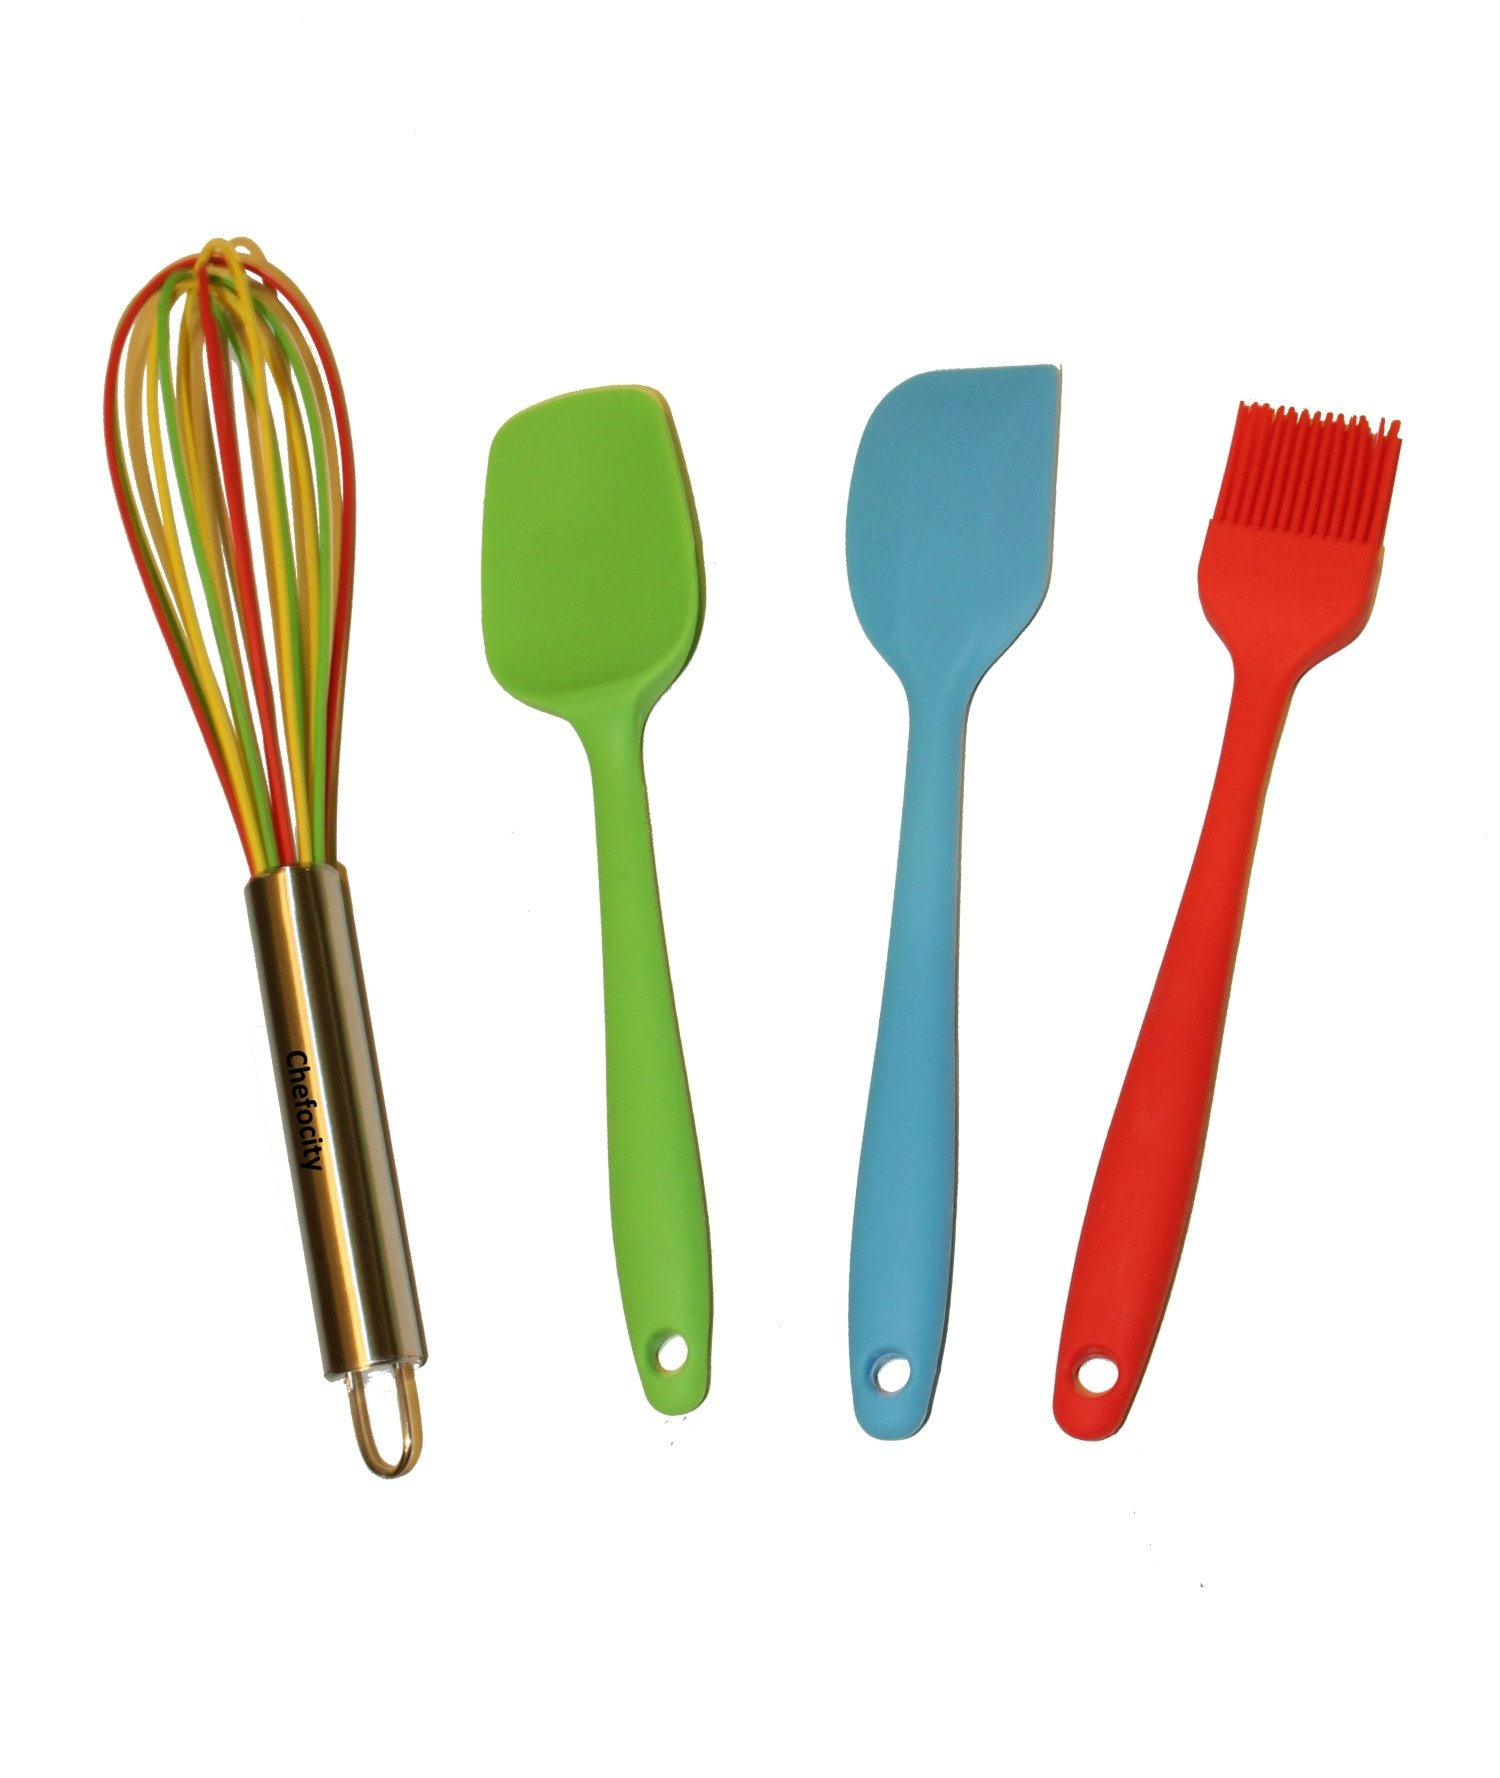 Kids Cooking Utensils - 4 Piece Kids Baking Set - Small Kids Kitchen Accessories - Silicone Whisk, Basting Brush, Scraper, Spatula. Durable Heat Resistant. Chefocity